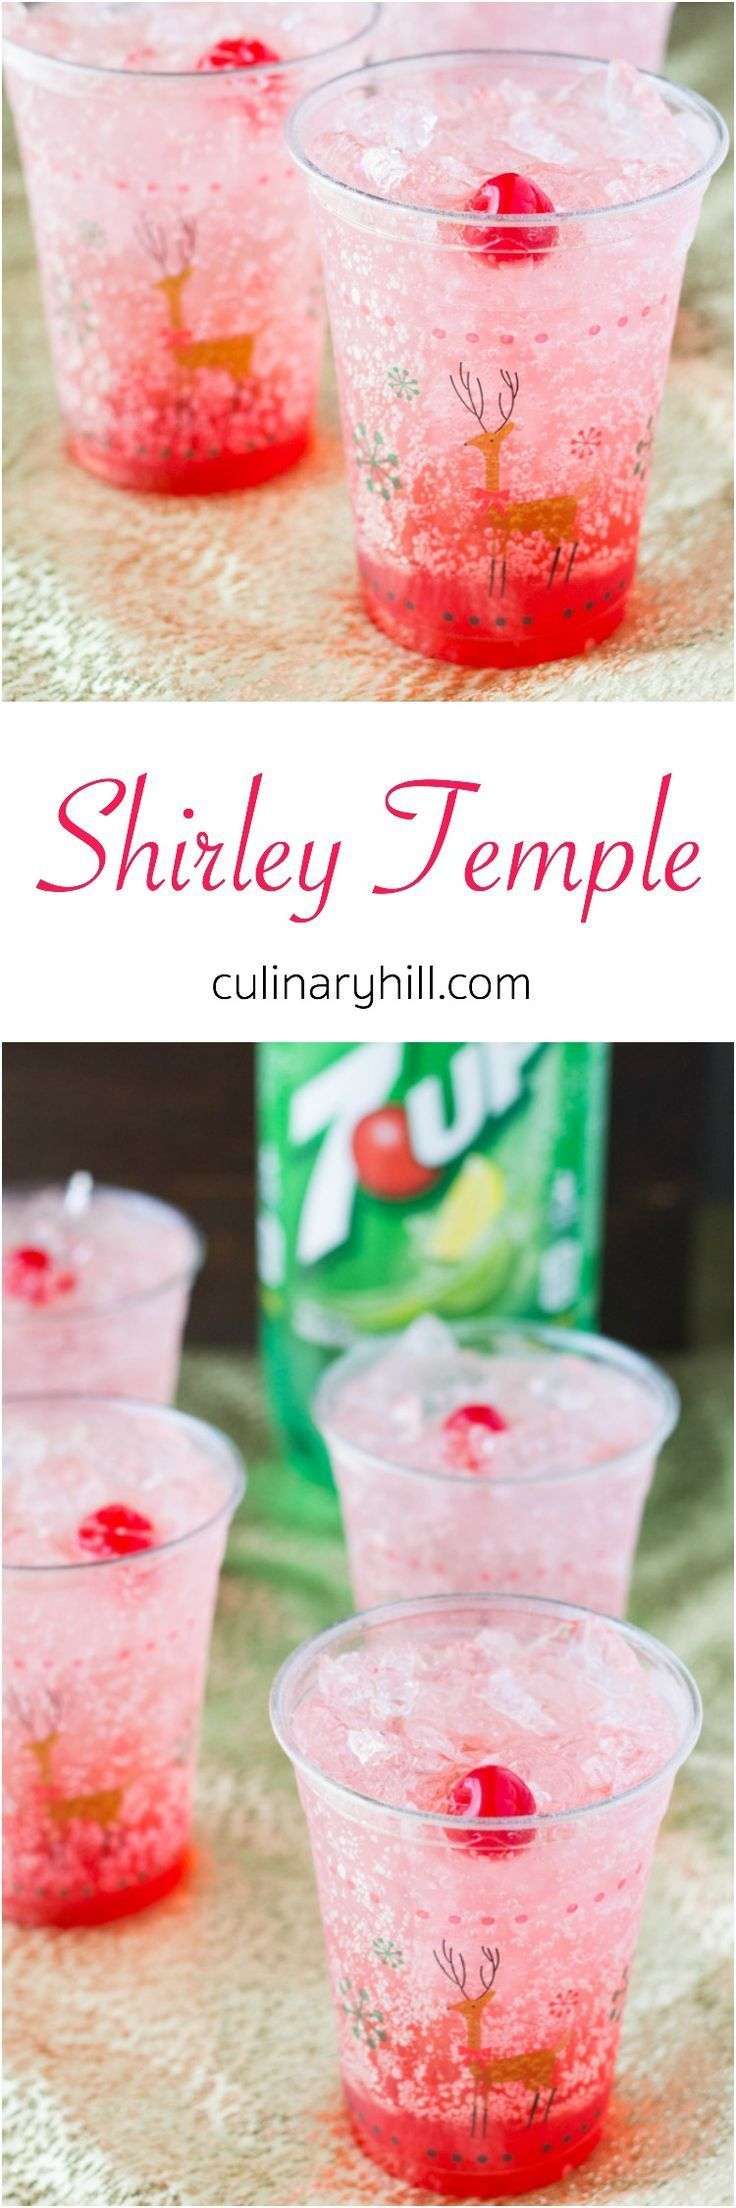 Shirley Temples are the ultimate kiddie cocktail! Great for holiday parties with family, expectant mothers, or designated drivers!